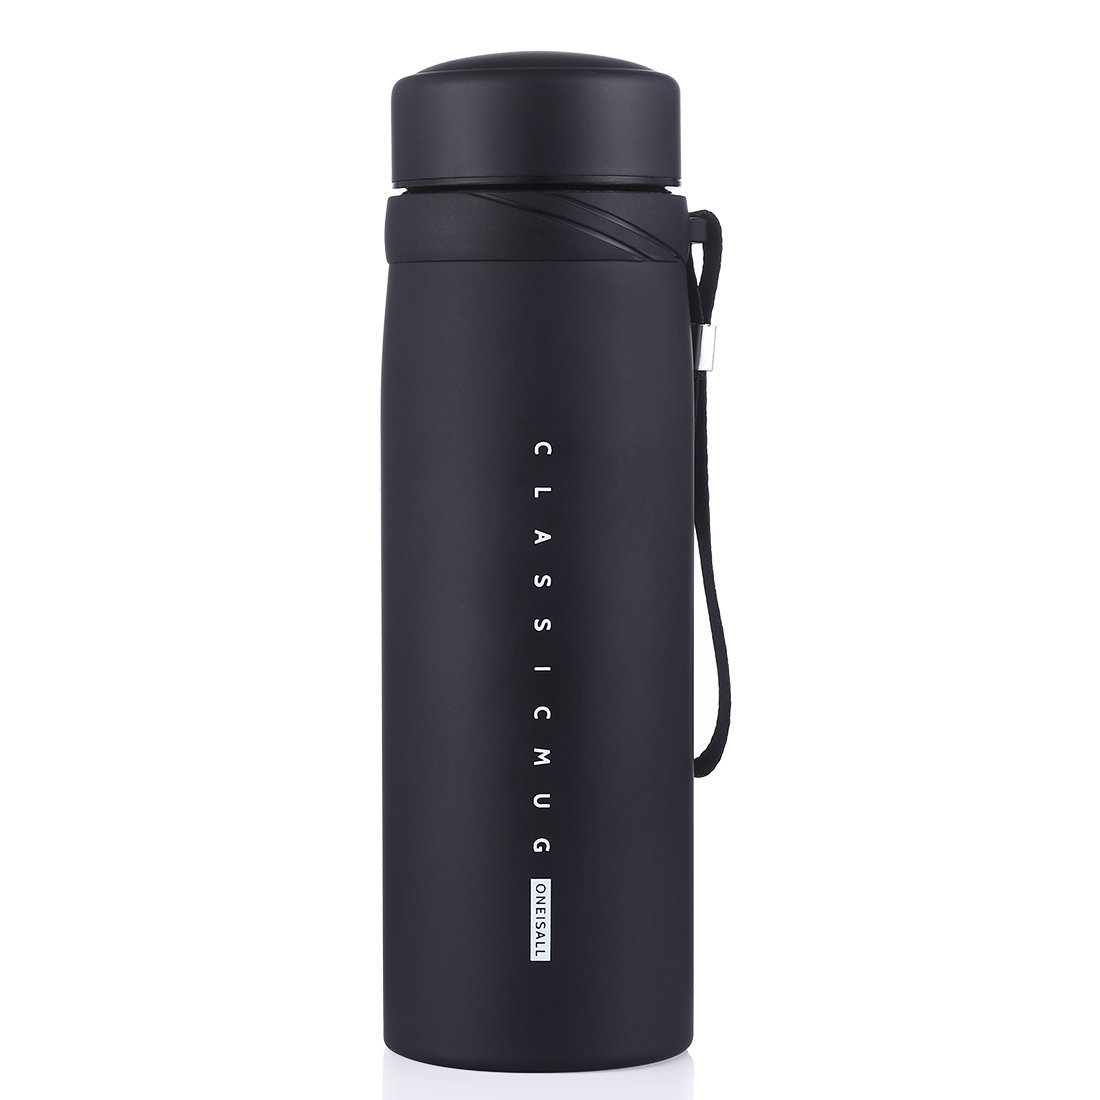 ONEISALL 30 OZ Large Stainless Steel Coffee Thermos Vacuum Insulated Water Bottle Beverage Bottle Wide Mouth Travel Tumbler with Tea Infuser,BPA Free Twist Lid Bottle for Hot/Cold Liquid (Black)